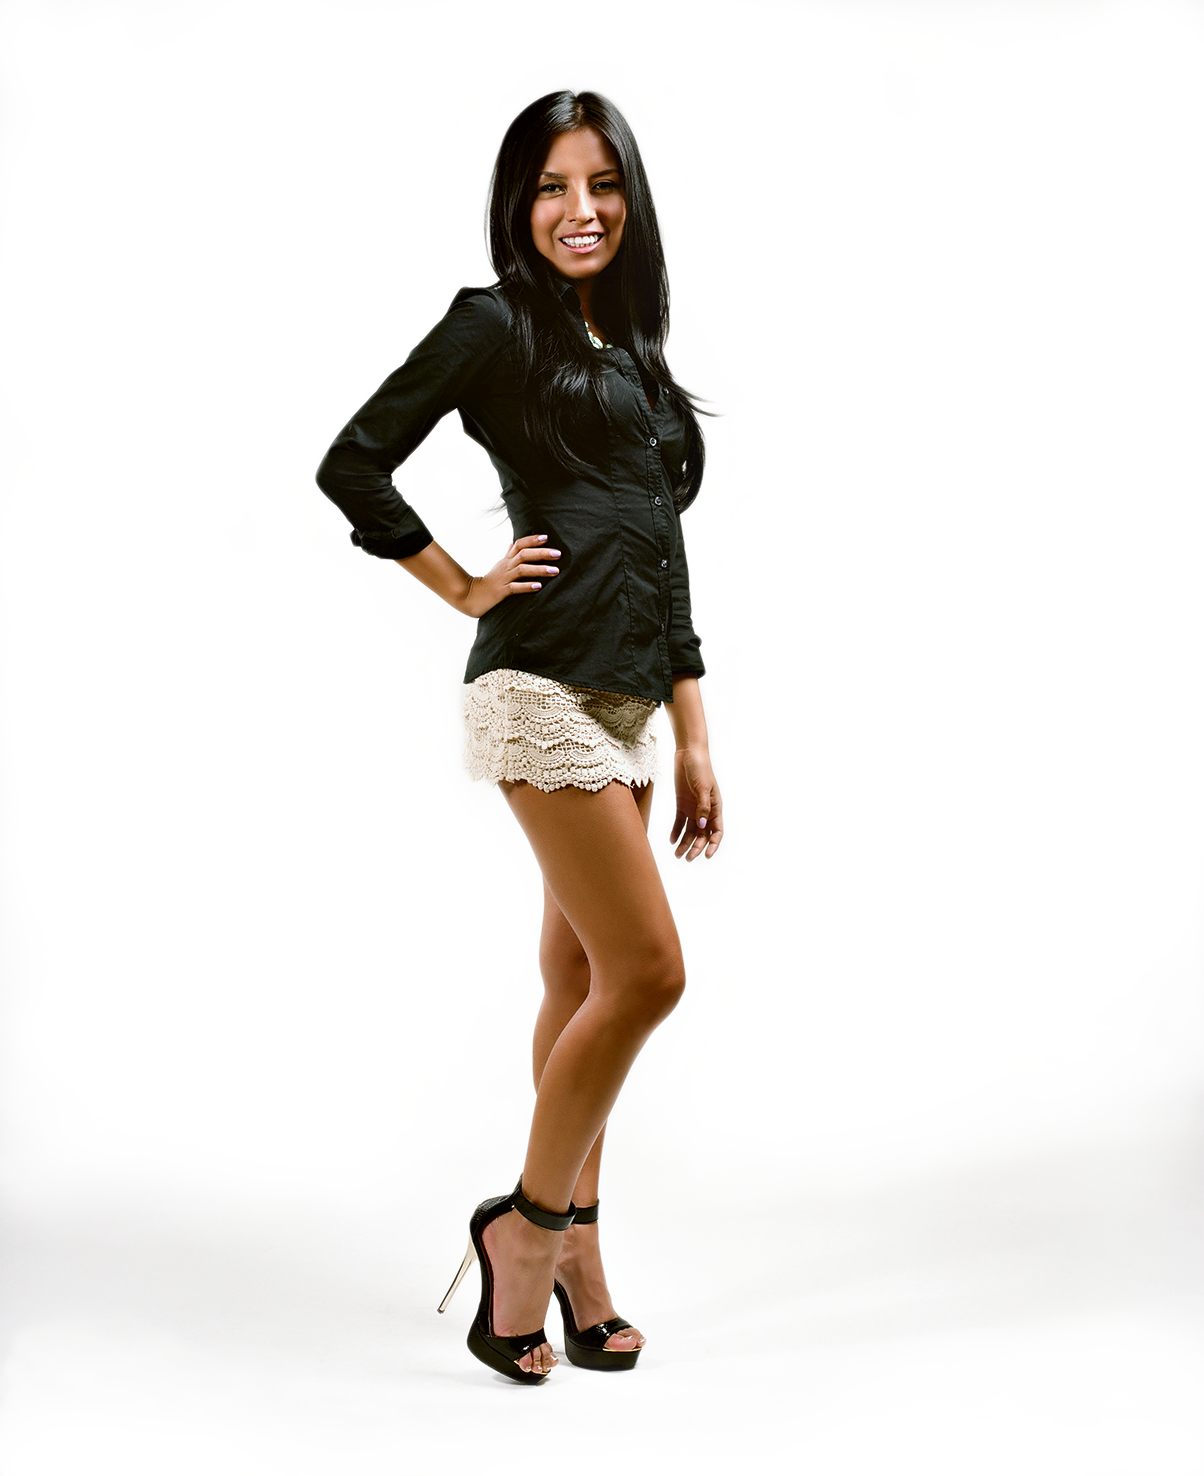 Full body studio portrait of Lissette with a hand on her right hip and arching her back